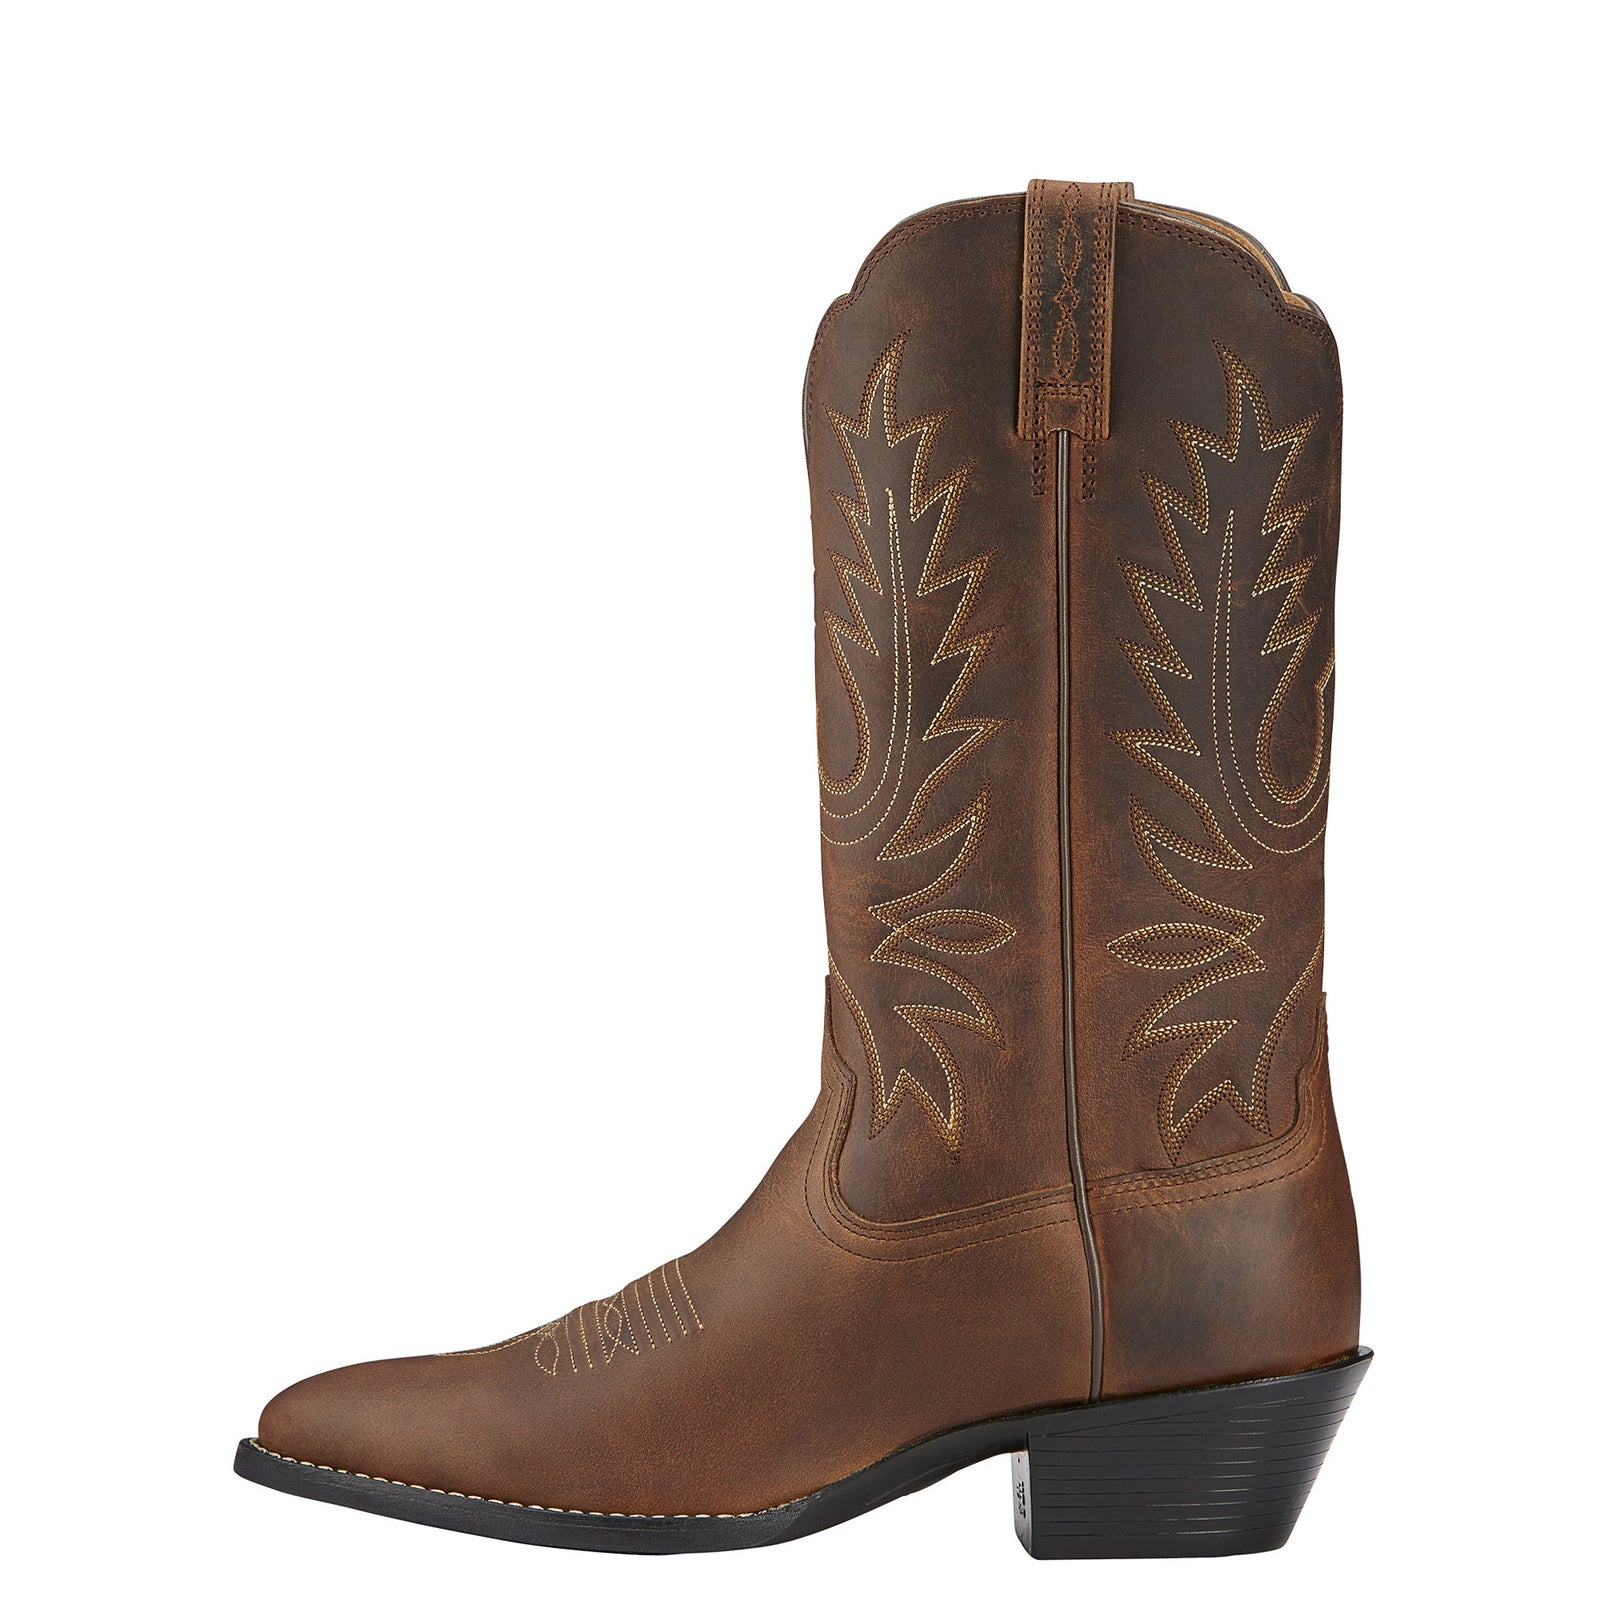 Ariat Women's Heritage Western R Toe Brown Distressed - VaqueroBoots.com - 3